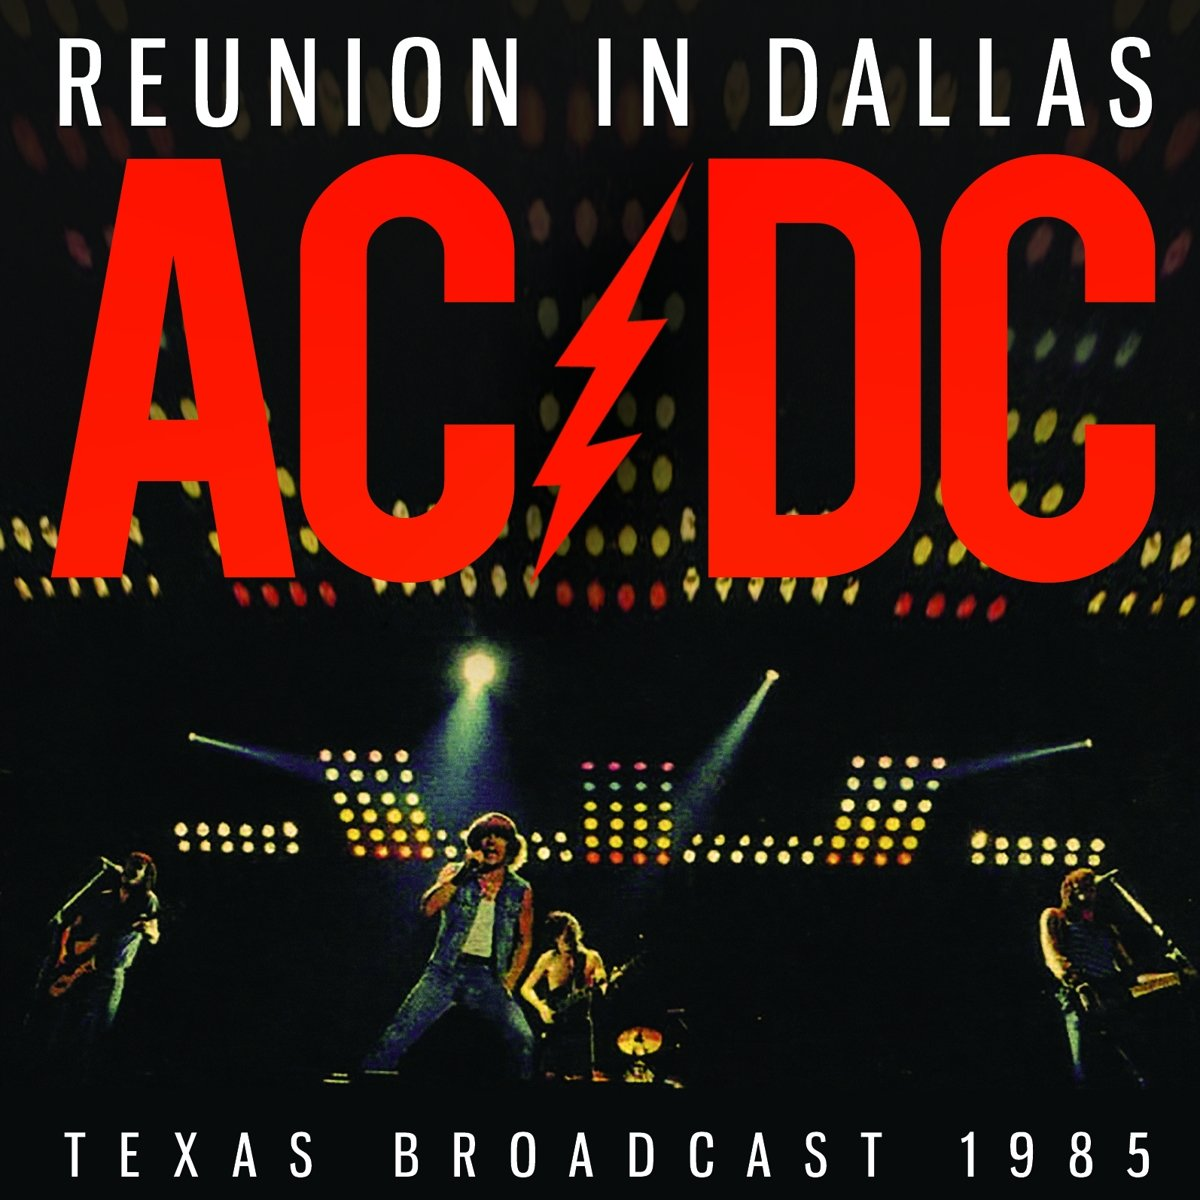 Reunion in Dallas - Ac/Dc: Amazon.de: Musik